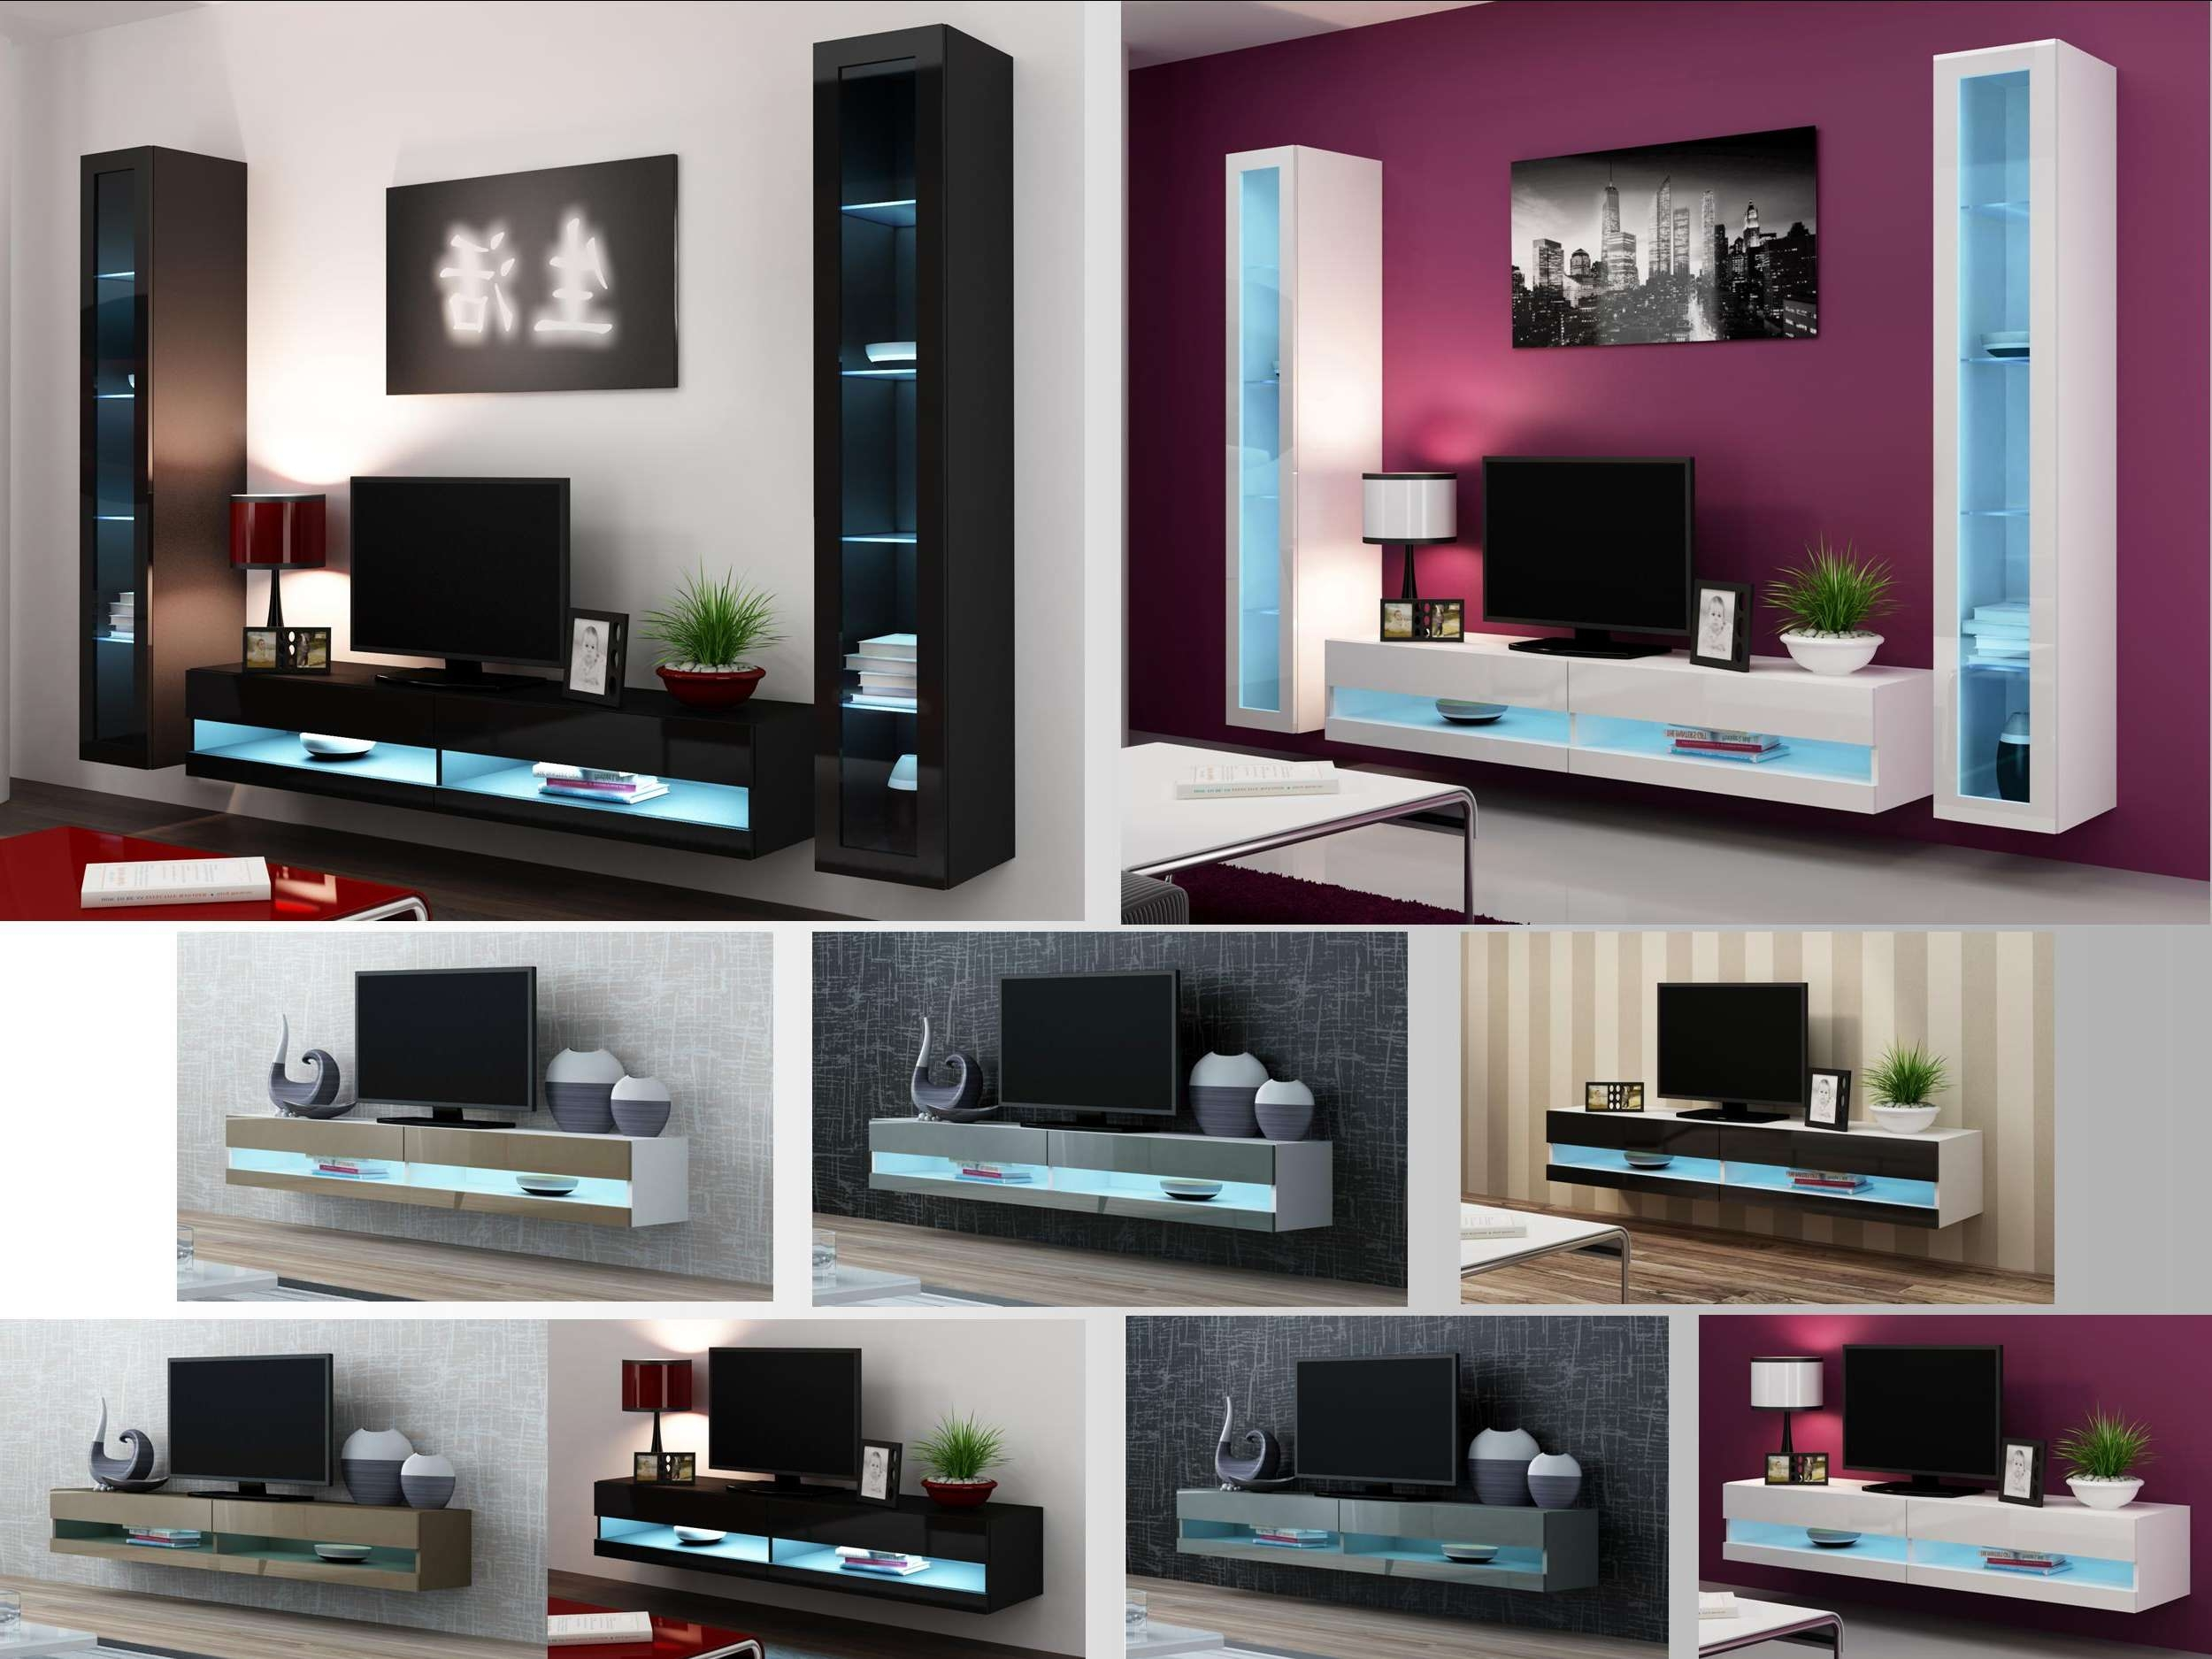 High Gloss Living Room Furniture – Tv Stand, Wall Mounted Cabinet Within Tv Stands Wall Units (View 1 of 15)